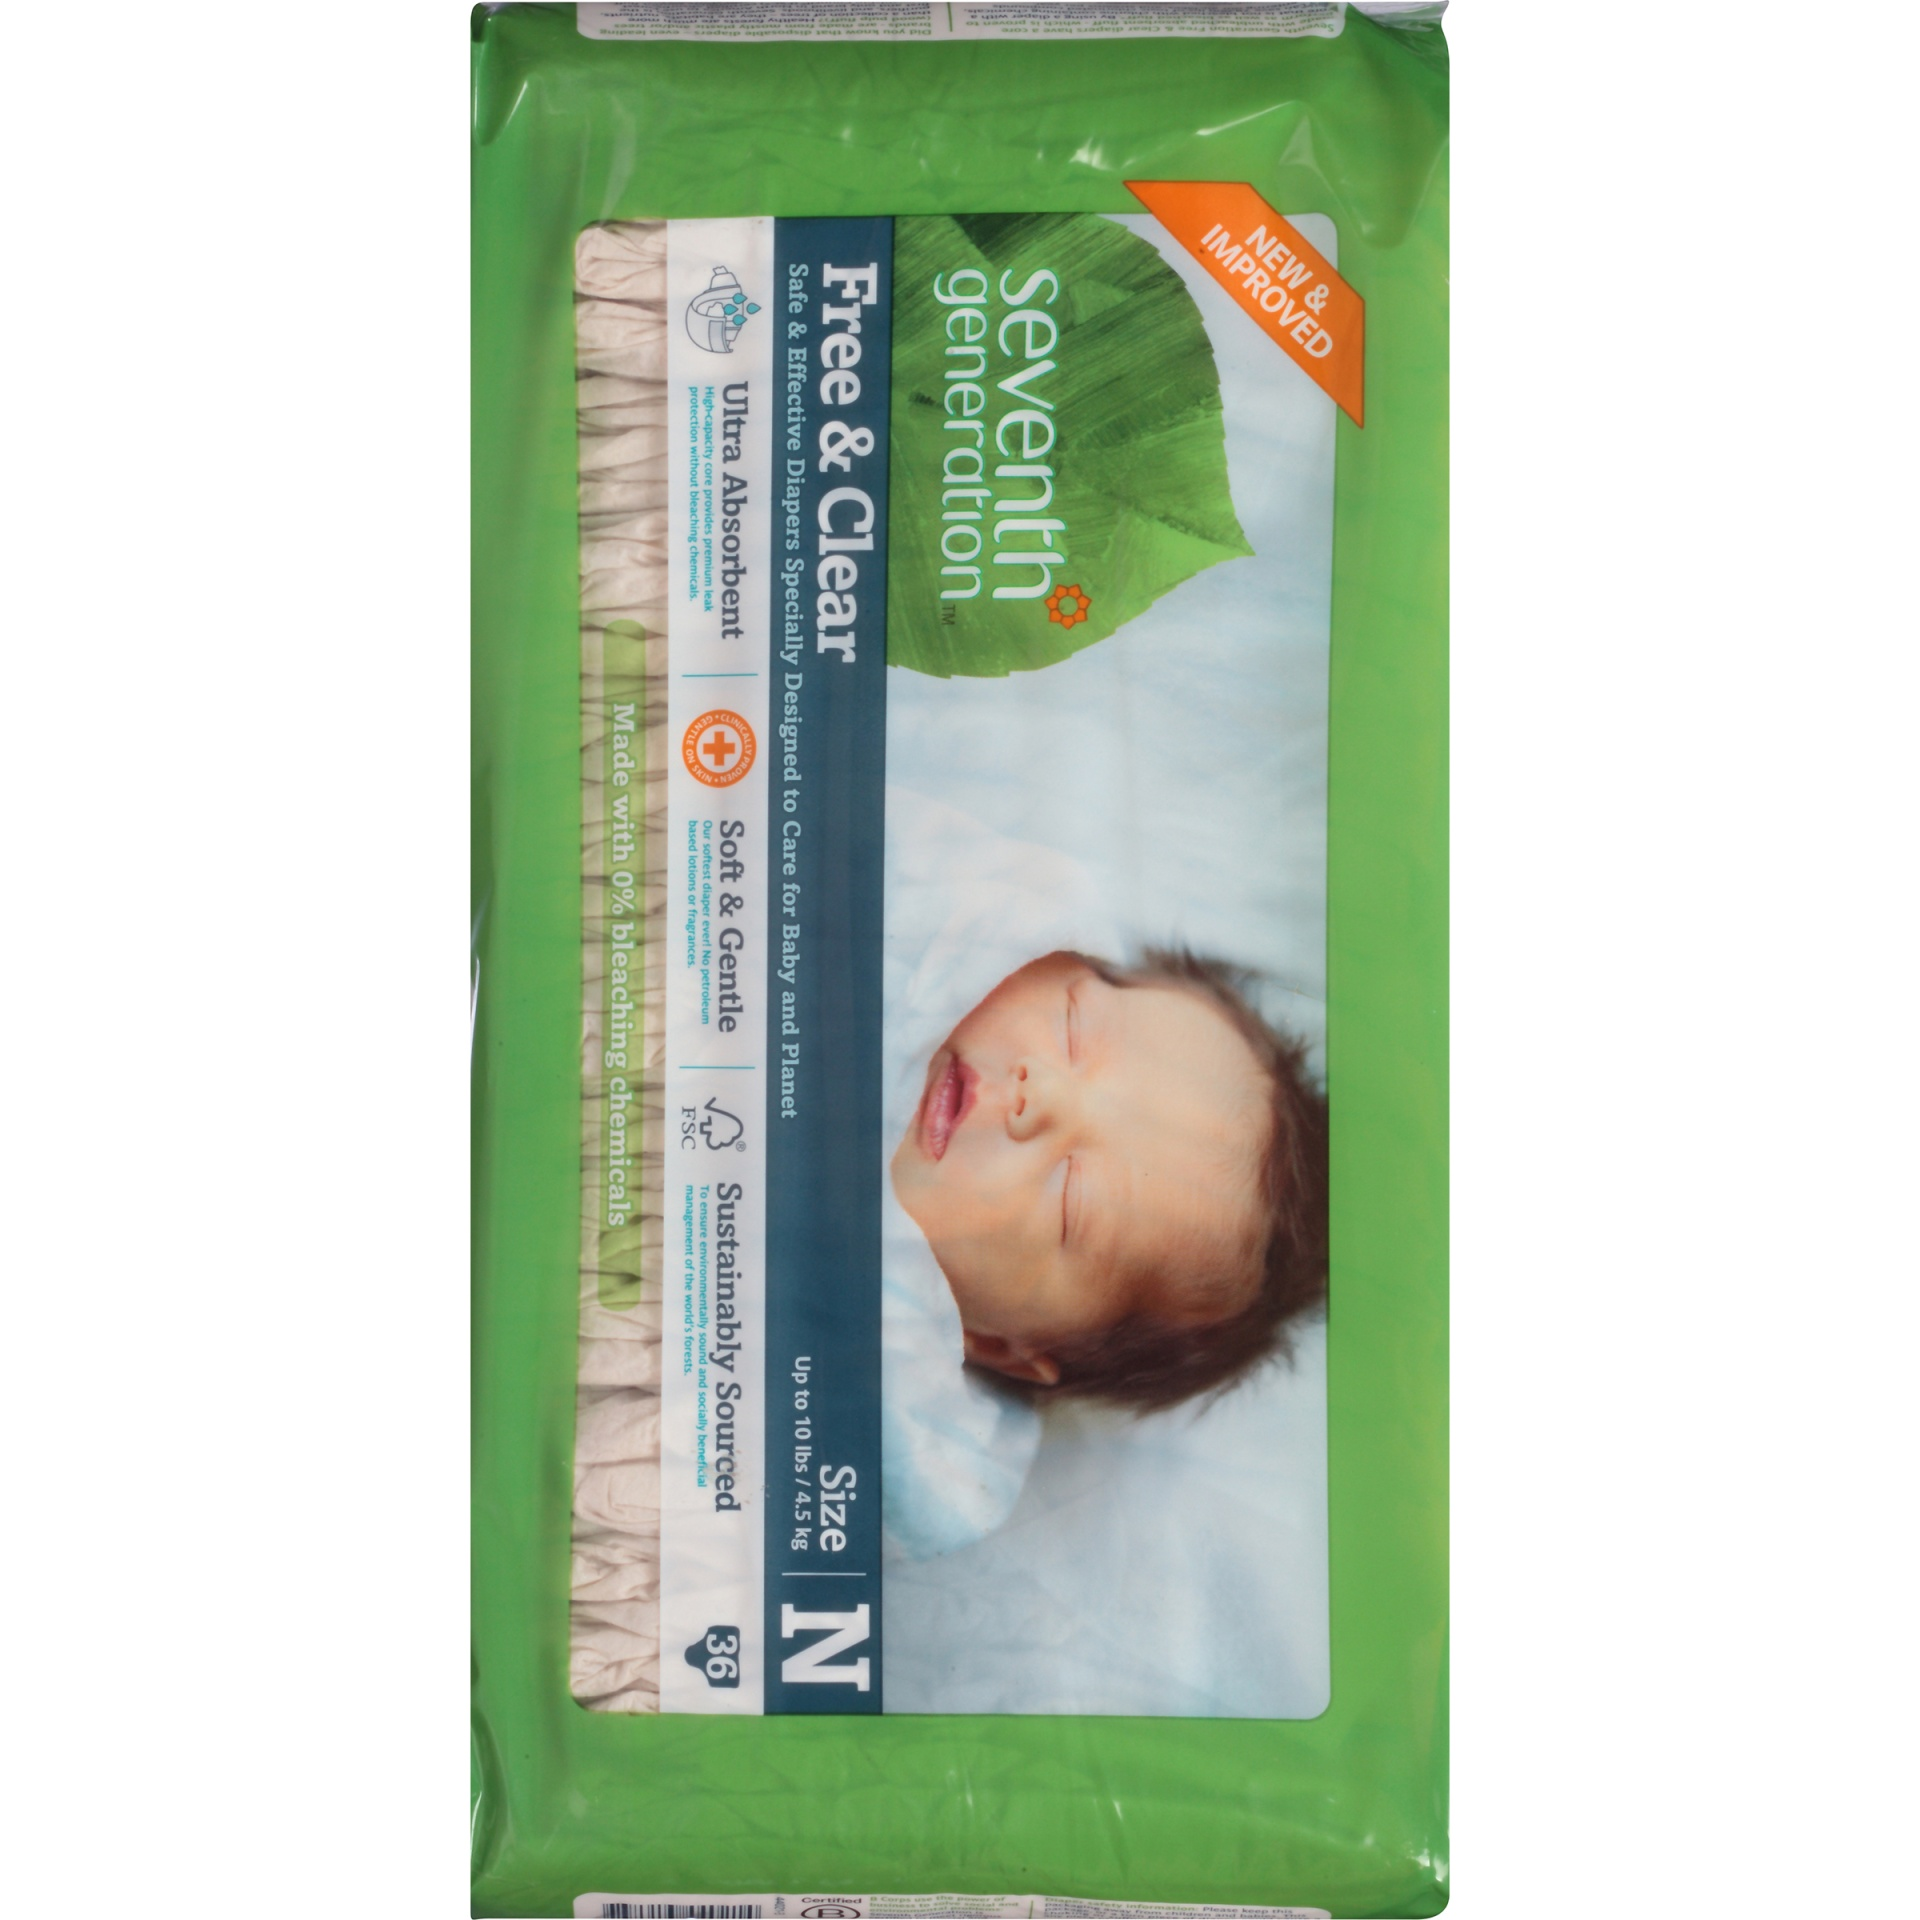 slide 6 of 6, Seventh Generation Free & Clear Diapers Newborn,